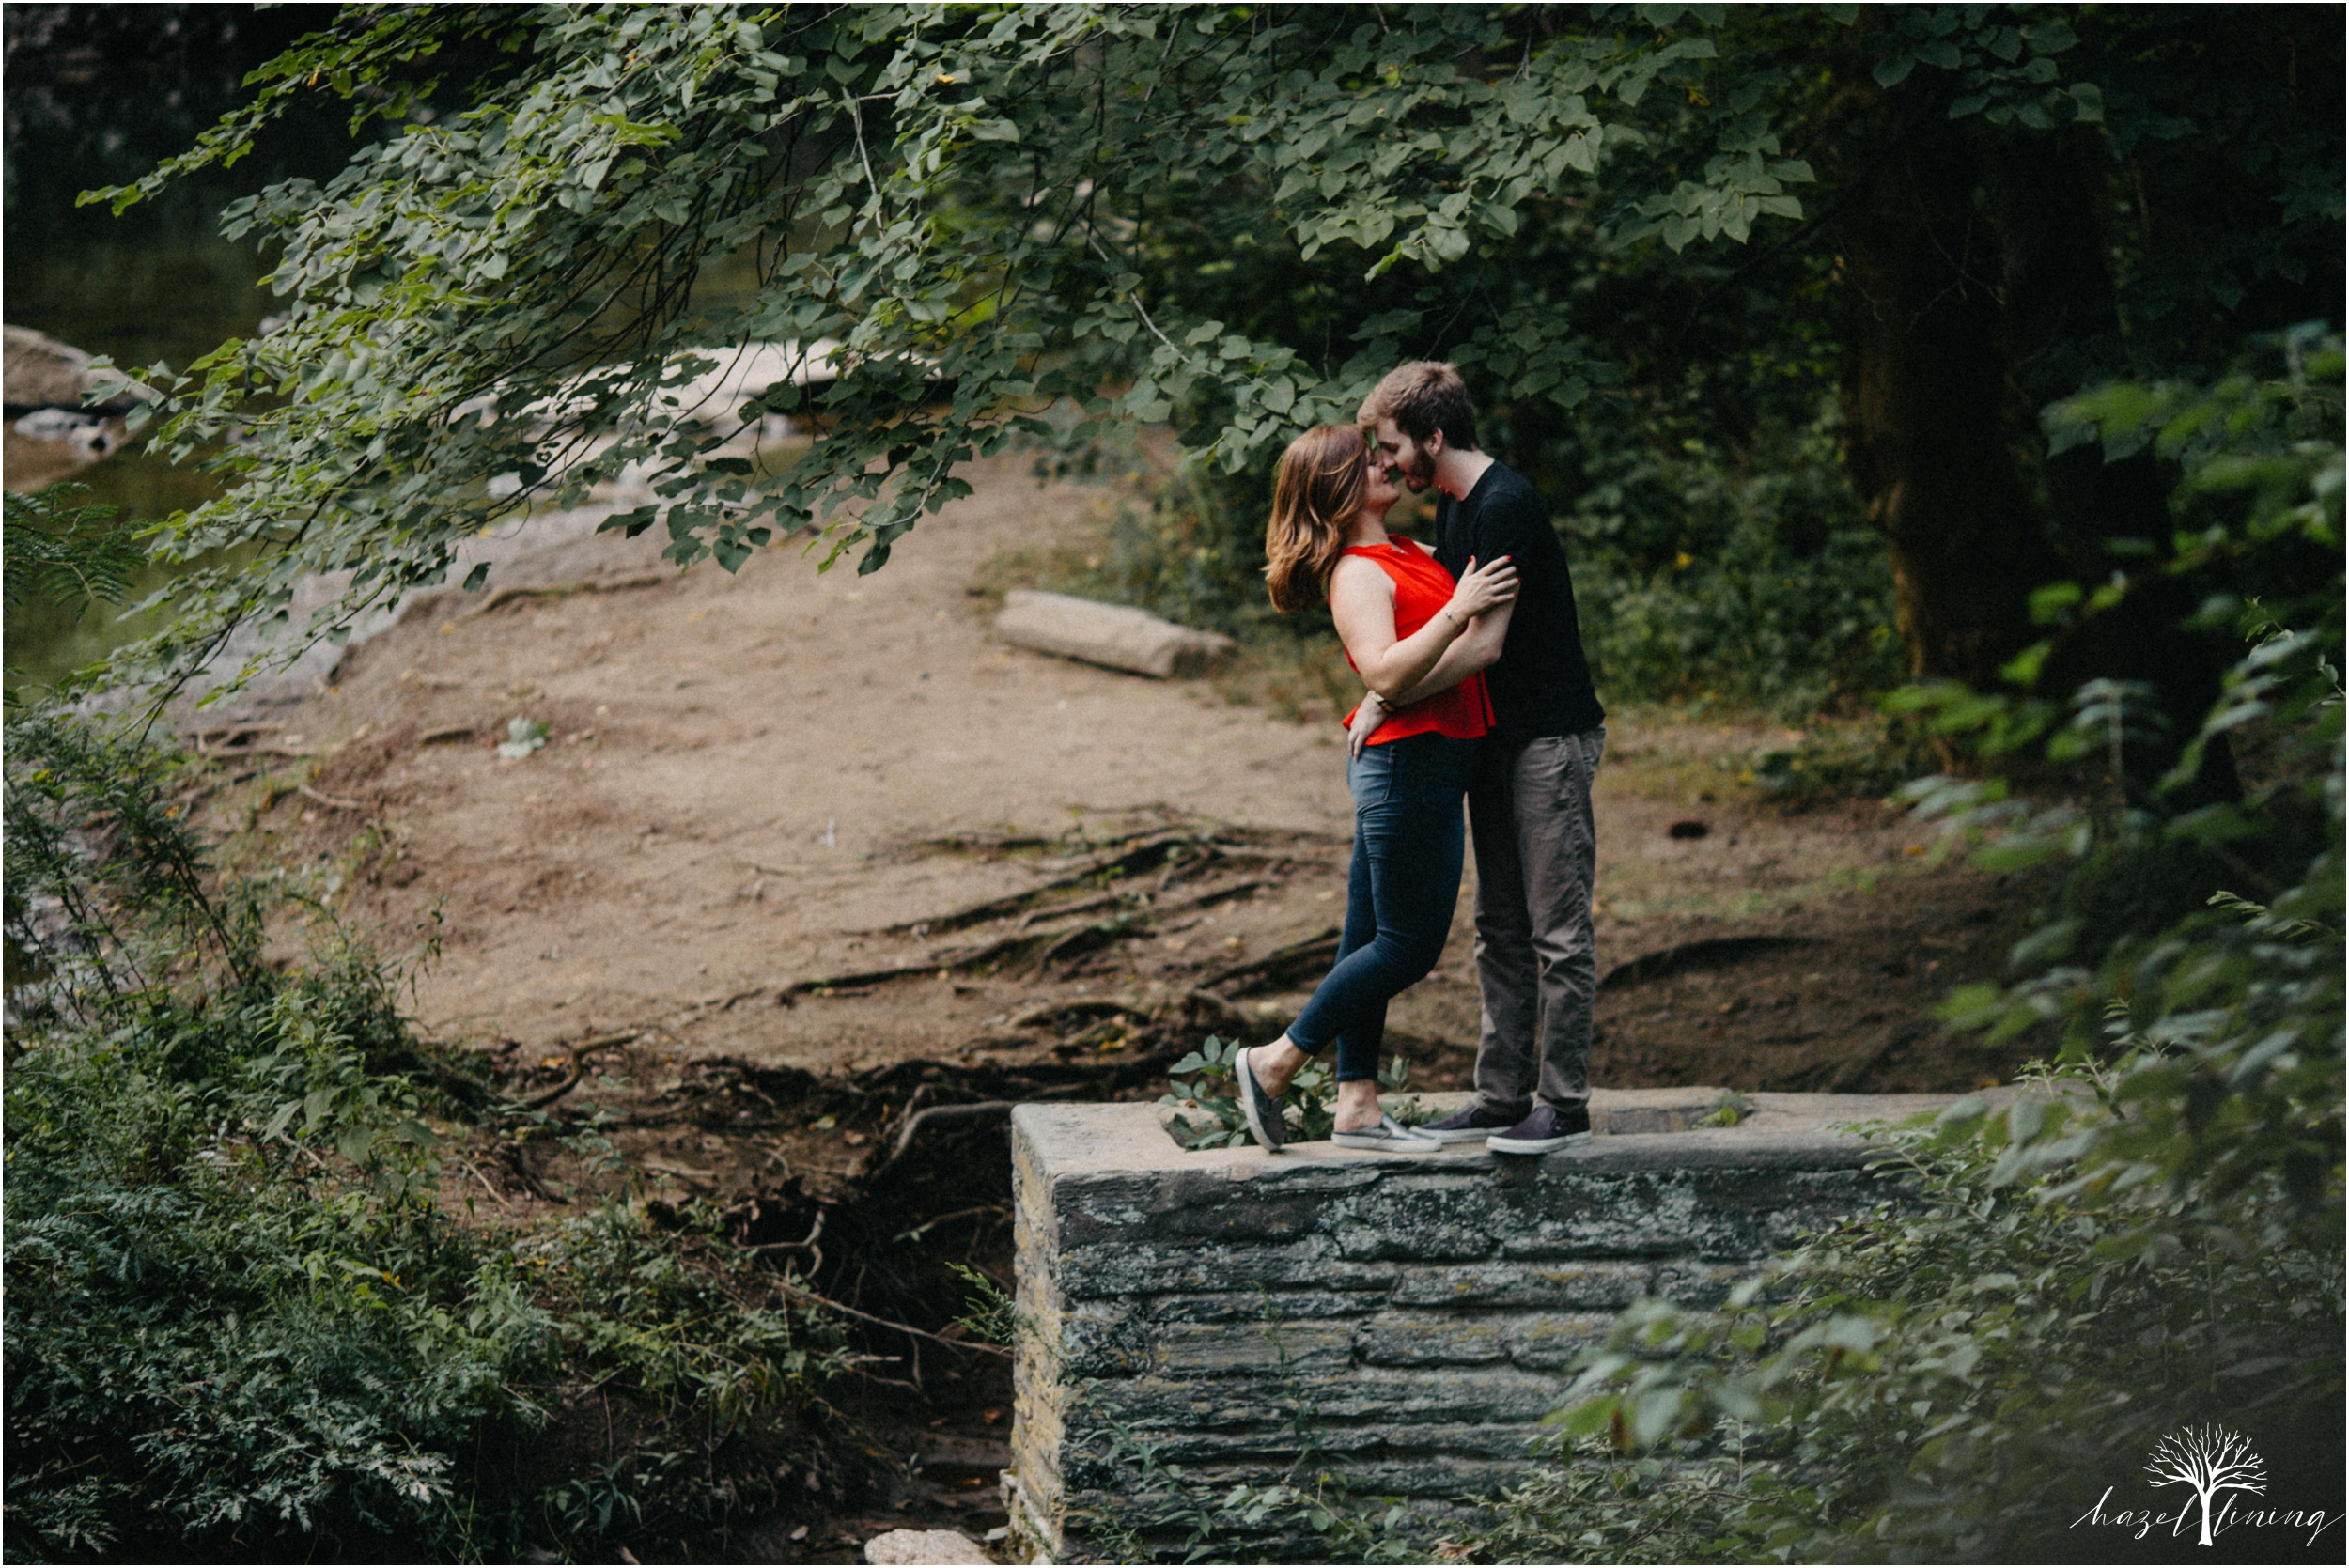 paige-kochey-chris-graham-valley-green-wissahickon-park-philadelphia-summer-engagement-session-hazel-lining-photography-destination-elopement-wedding-engagement-photography_0051.jpg